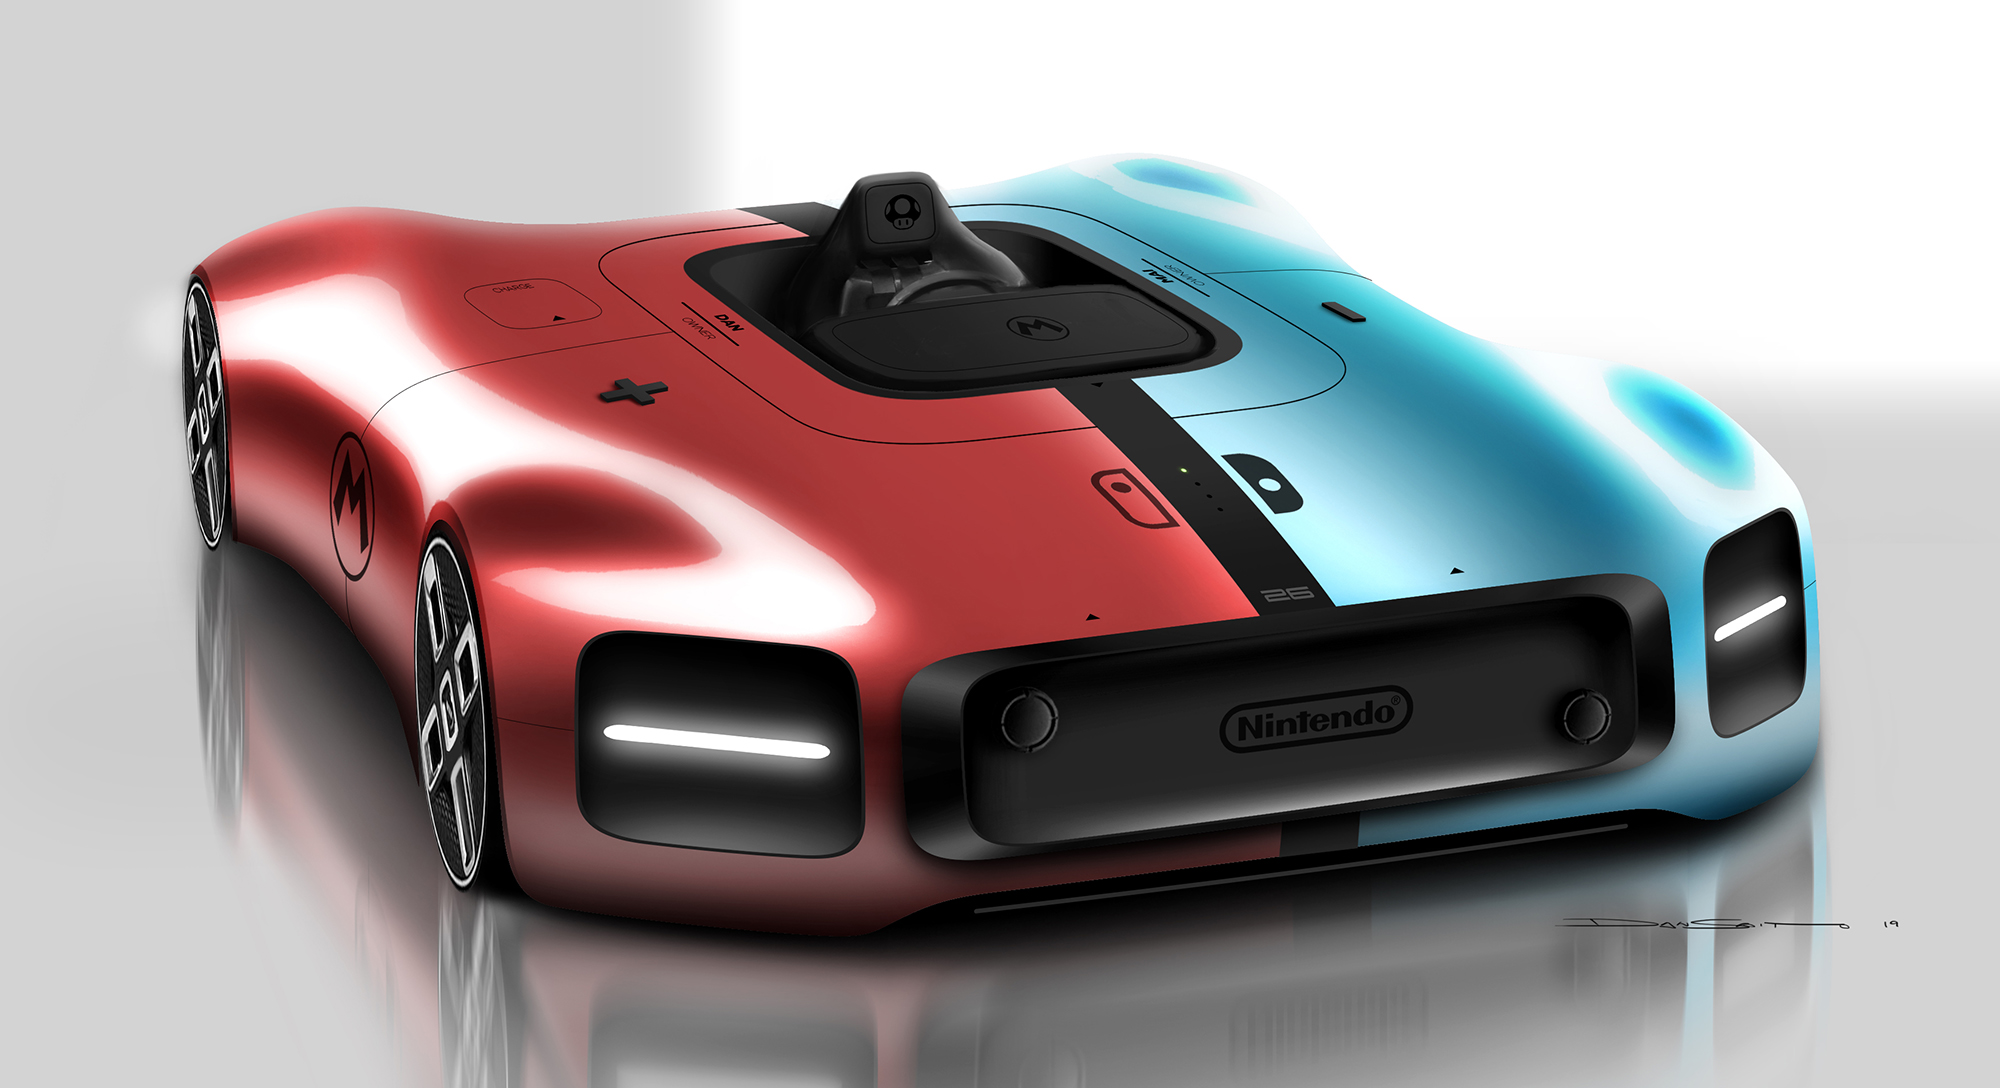 car_026_nintendo_web.jpg